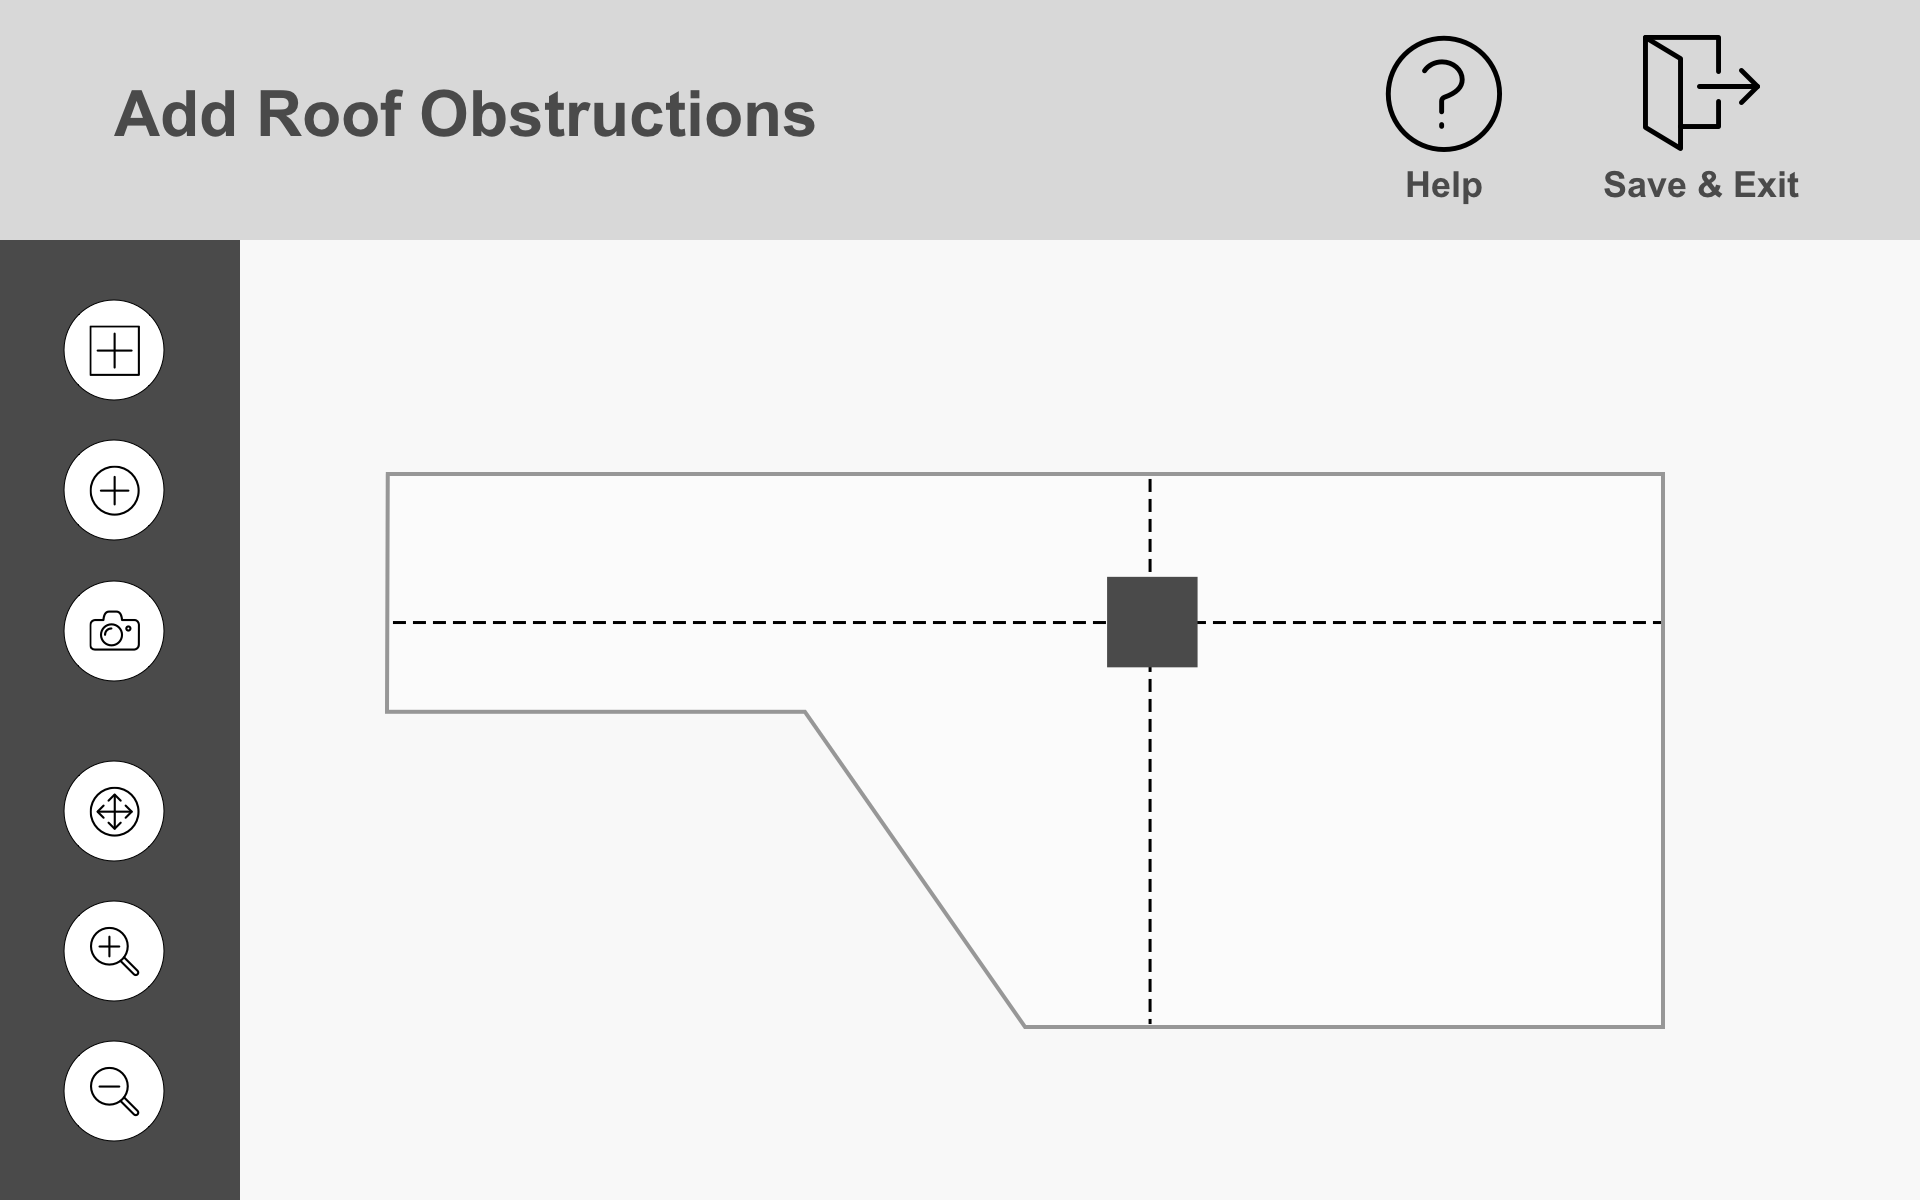 4.0.0_Structural_Roof_Obstructions-Instructions.png